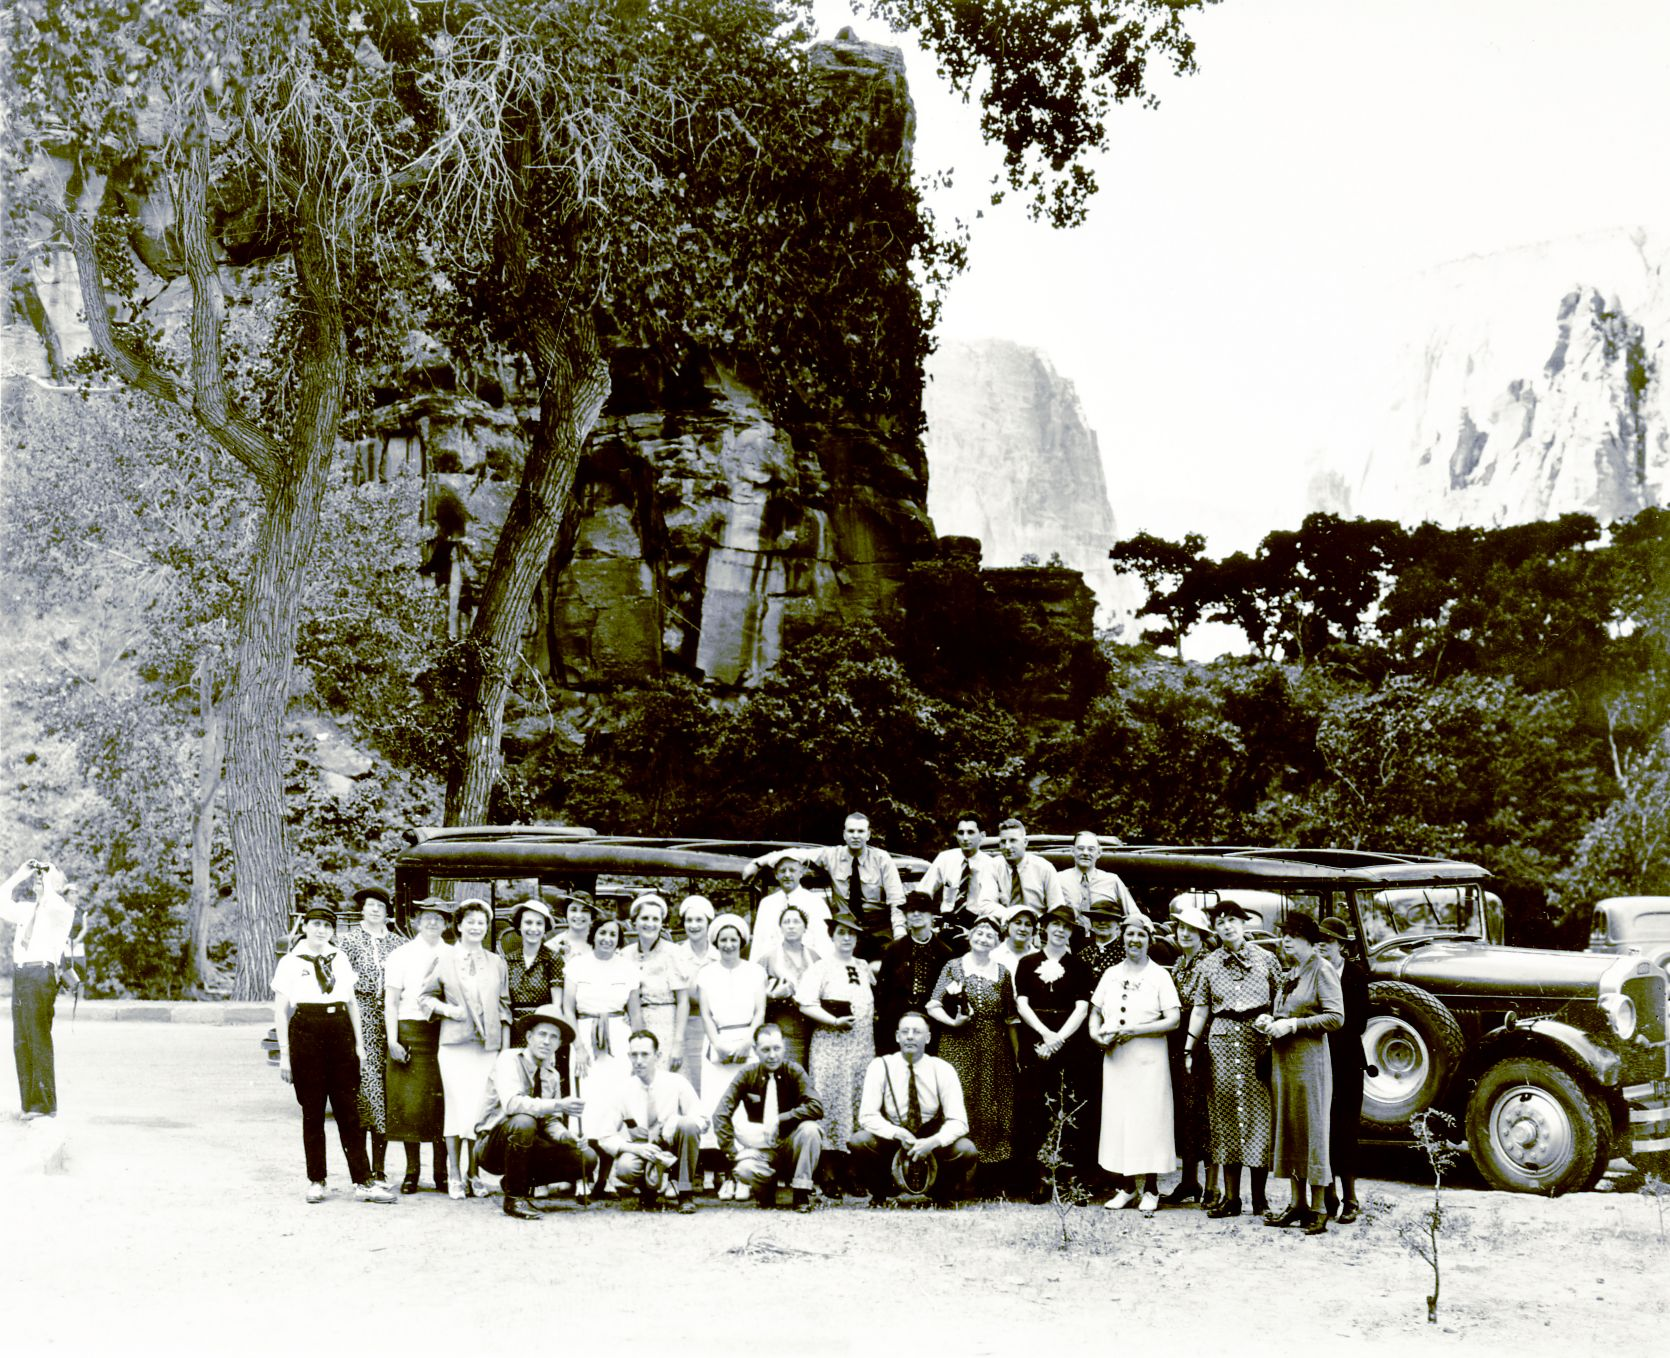 One of the suggestions from the park's collaboration efforts with local stakeholders is to return to what was done in the past - bus tours of Zion like the ones the Utah Parks Company did for guests arriving by rail in the 1920s and 1930s. In this picture, Utah Parks Company employees pose by buses at the Temple of Sinawava in 1930, Zion National Park, 1930 | Photo courtesy of Zion National Park, St. George News